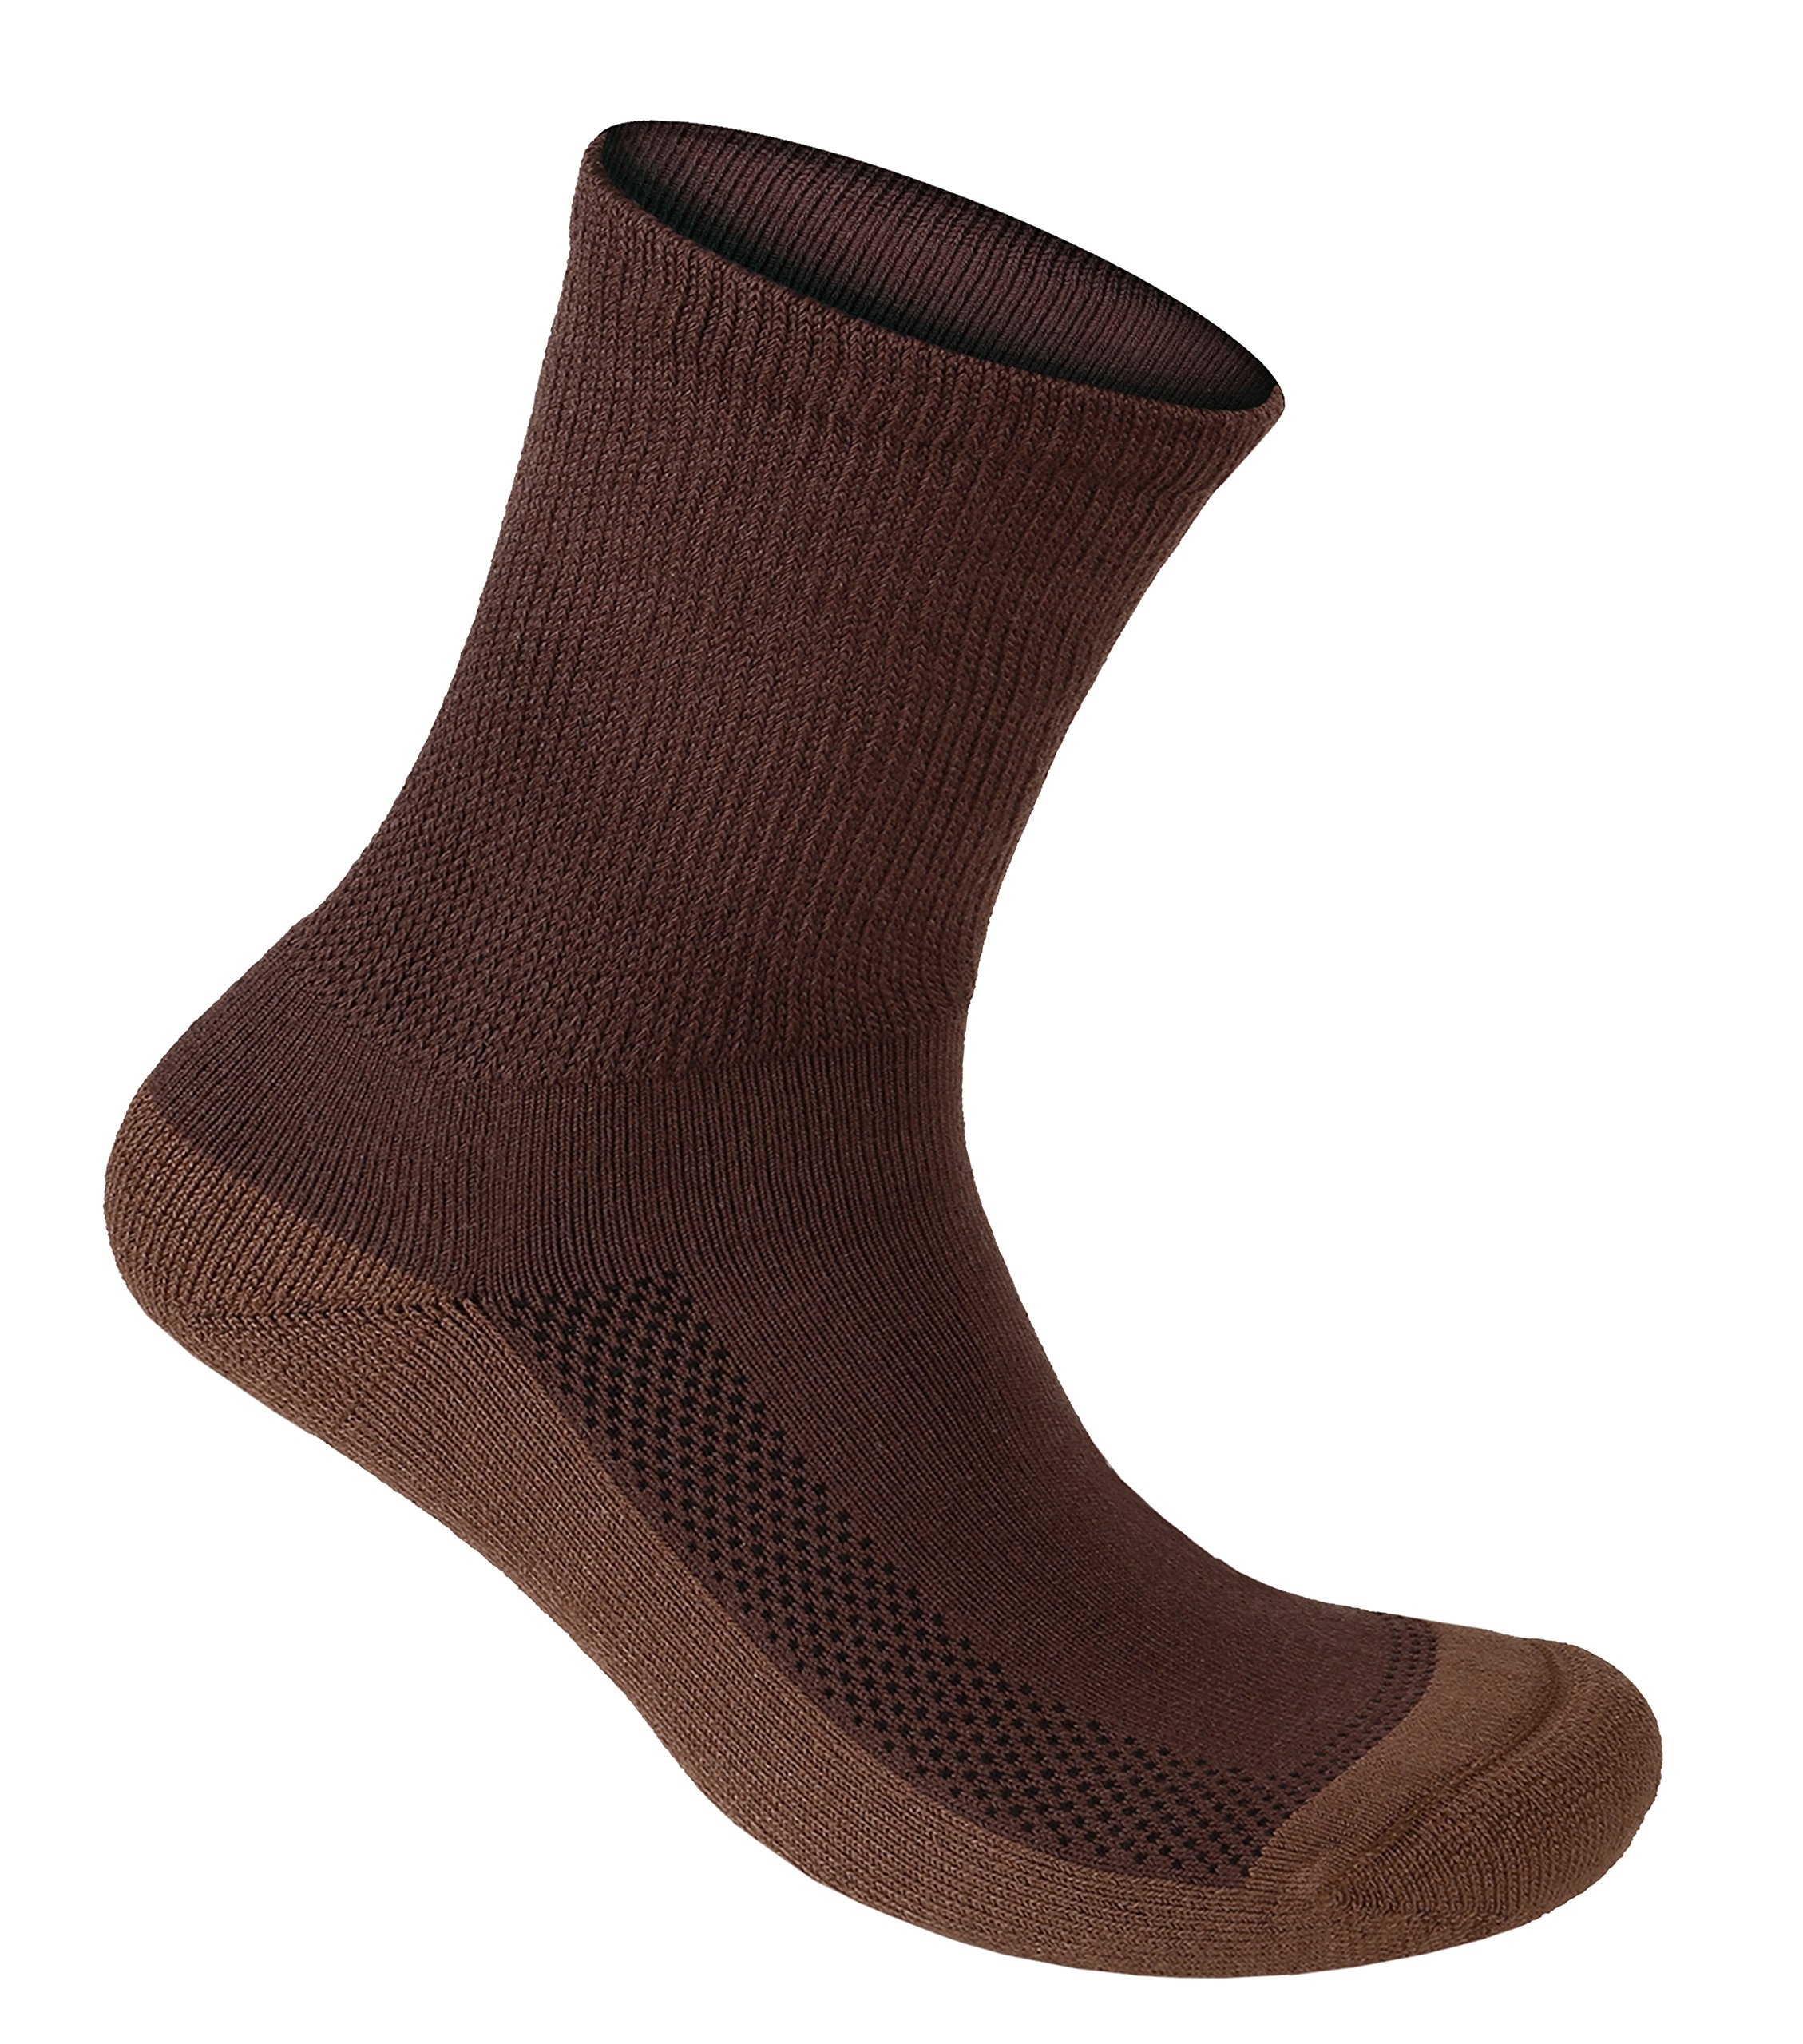 Orthofeet Extra Roomy Non-Binding Non-Constrictive Circulation Seam Free Bamboo Socks Dark Brown, 3 Pack Large